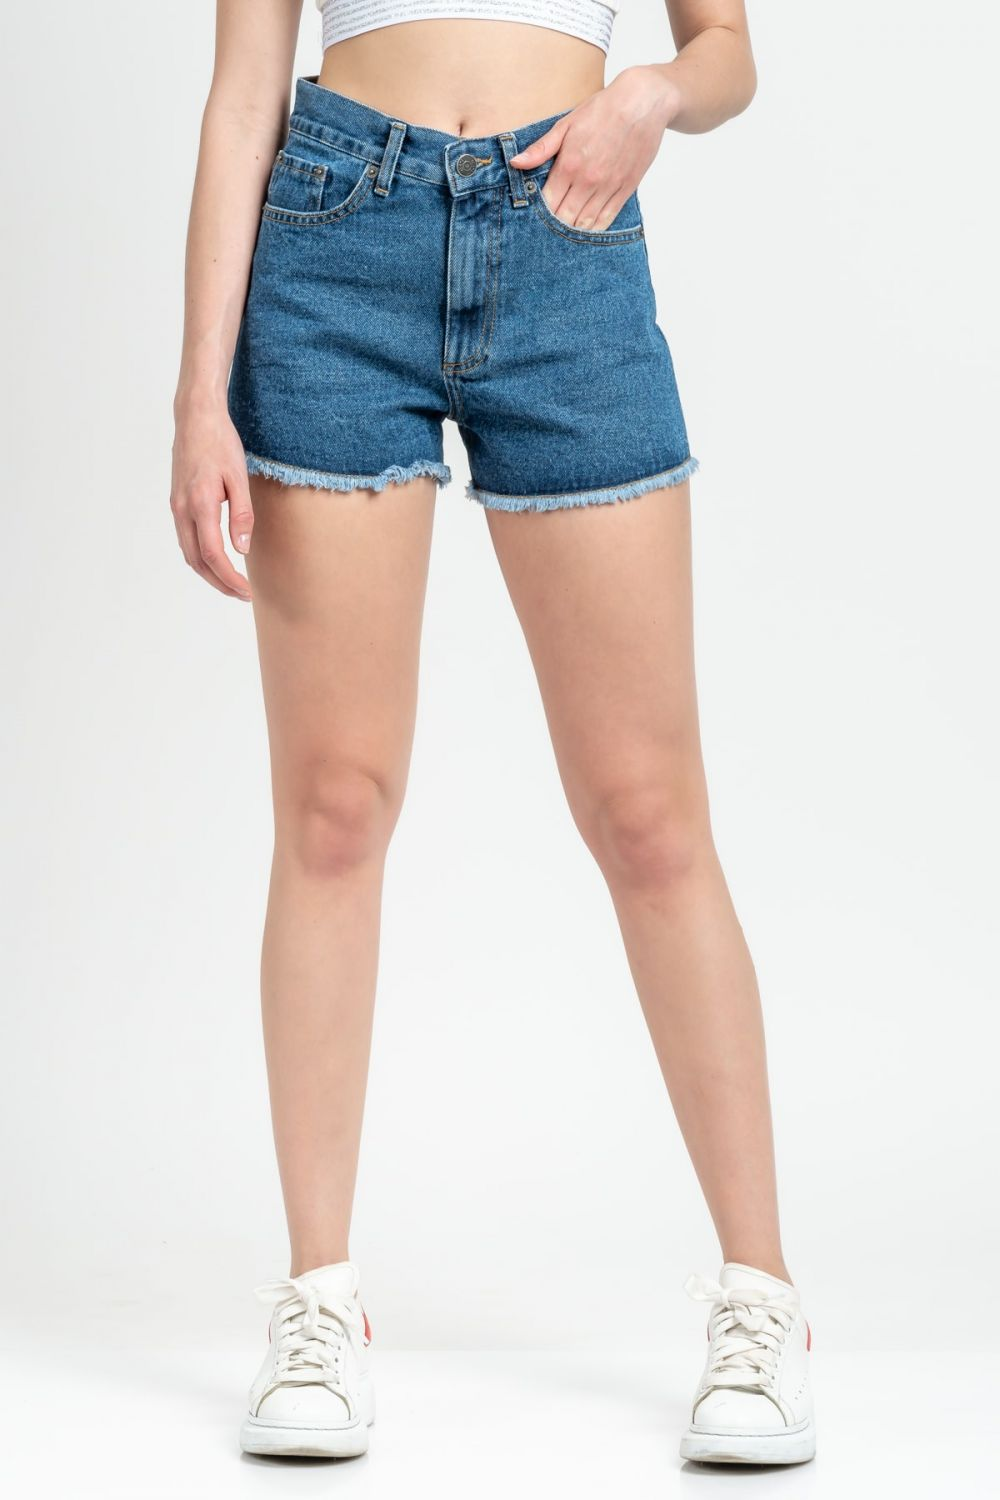 Tyra medium dark blue jean shorts